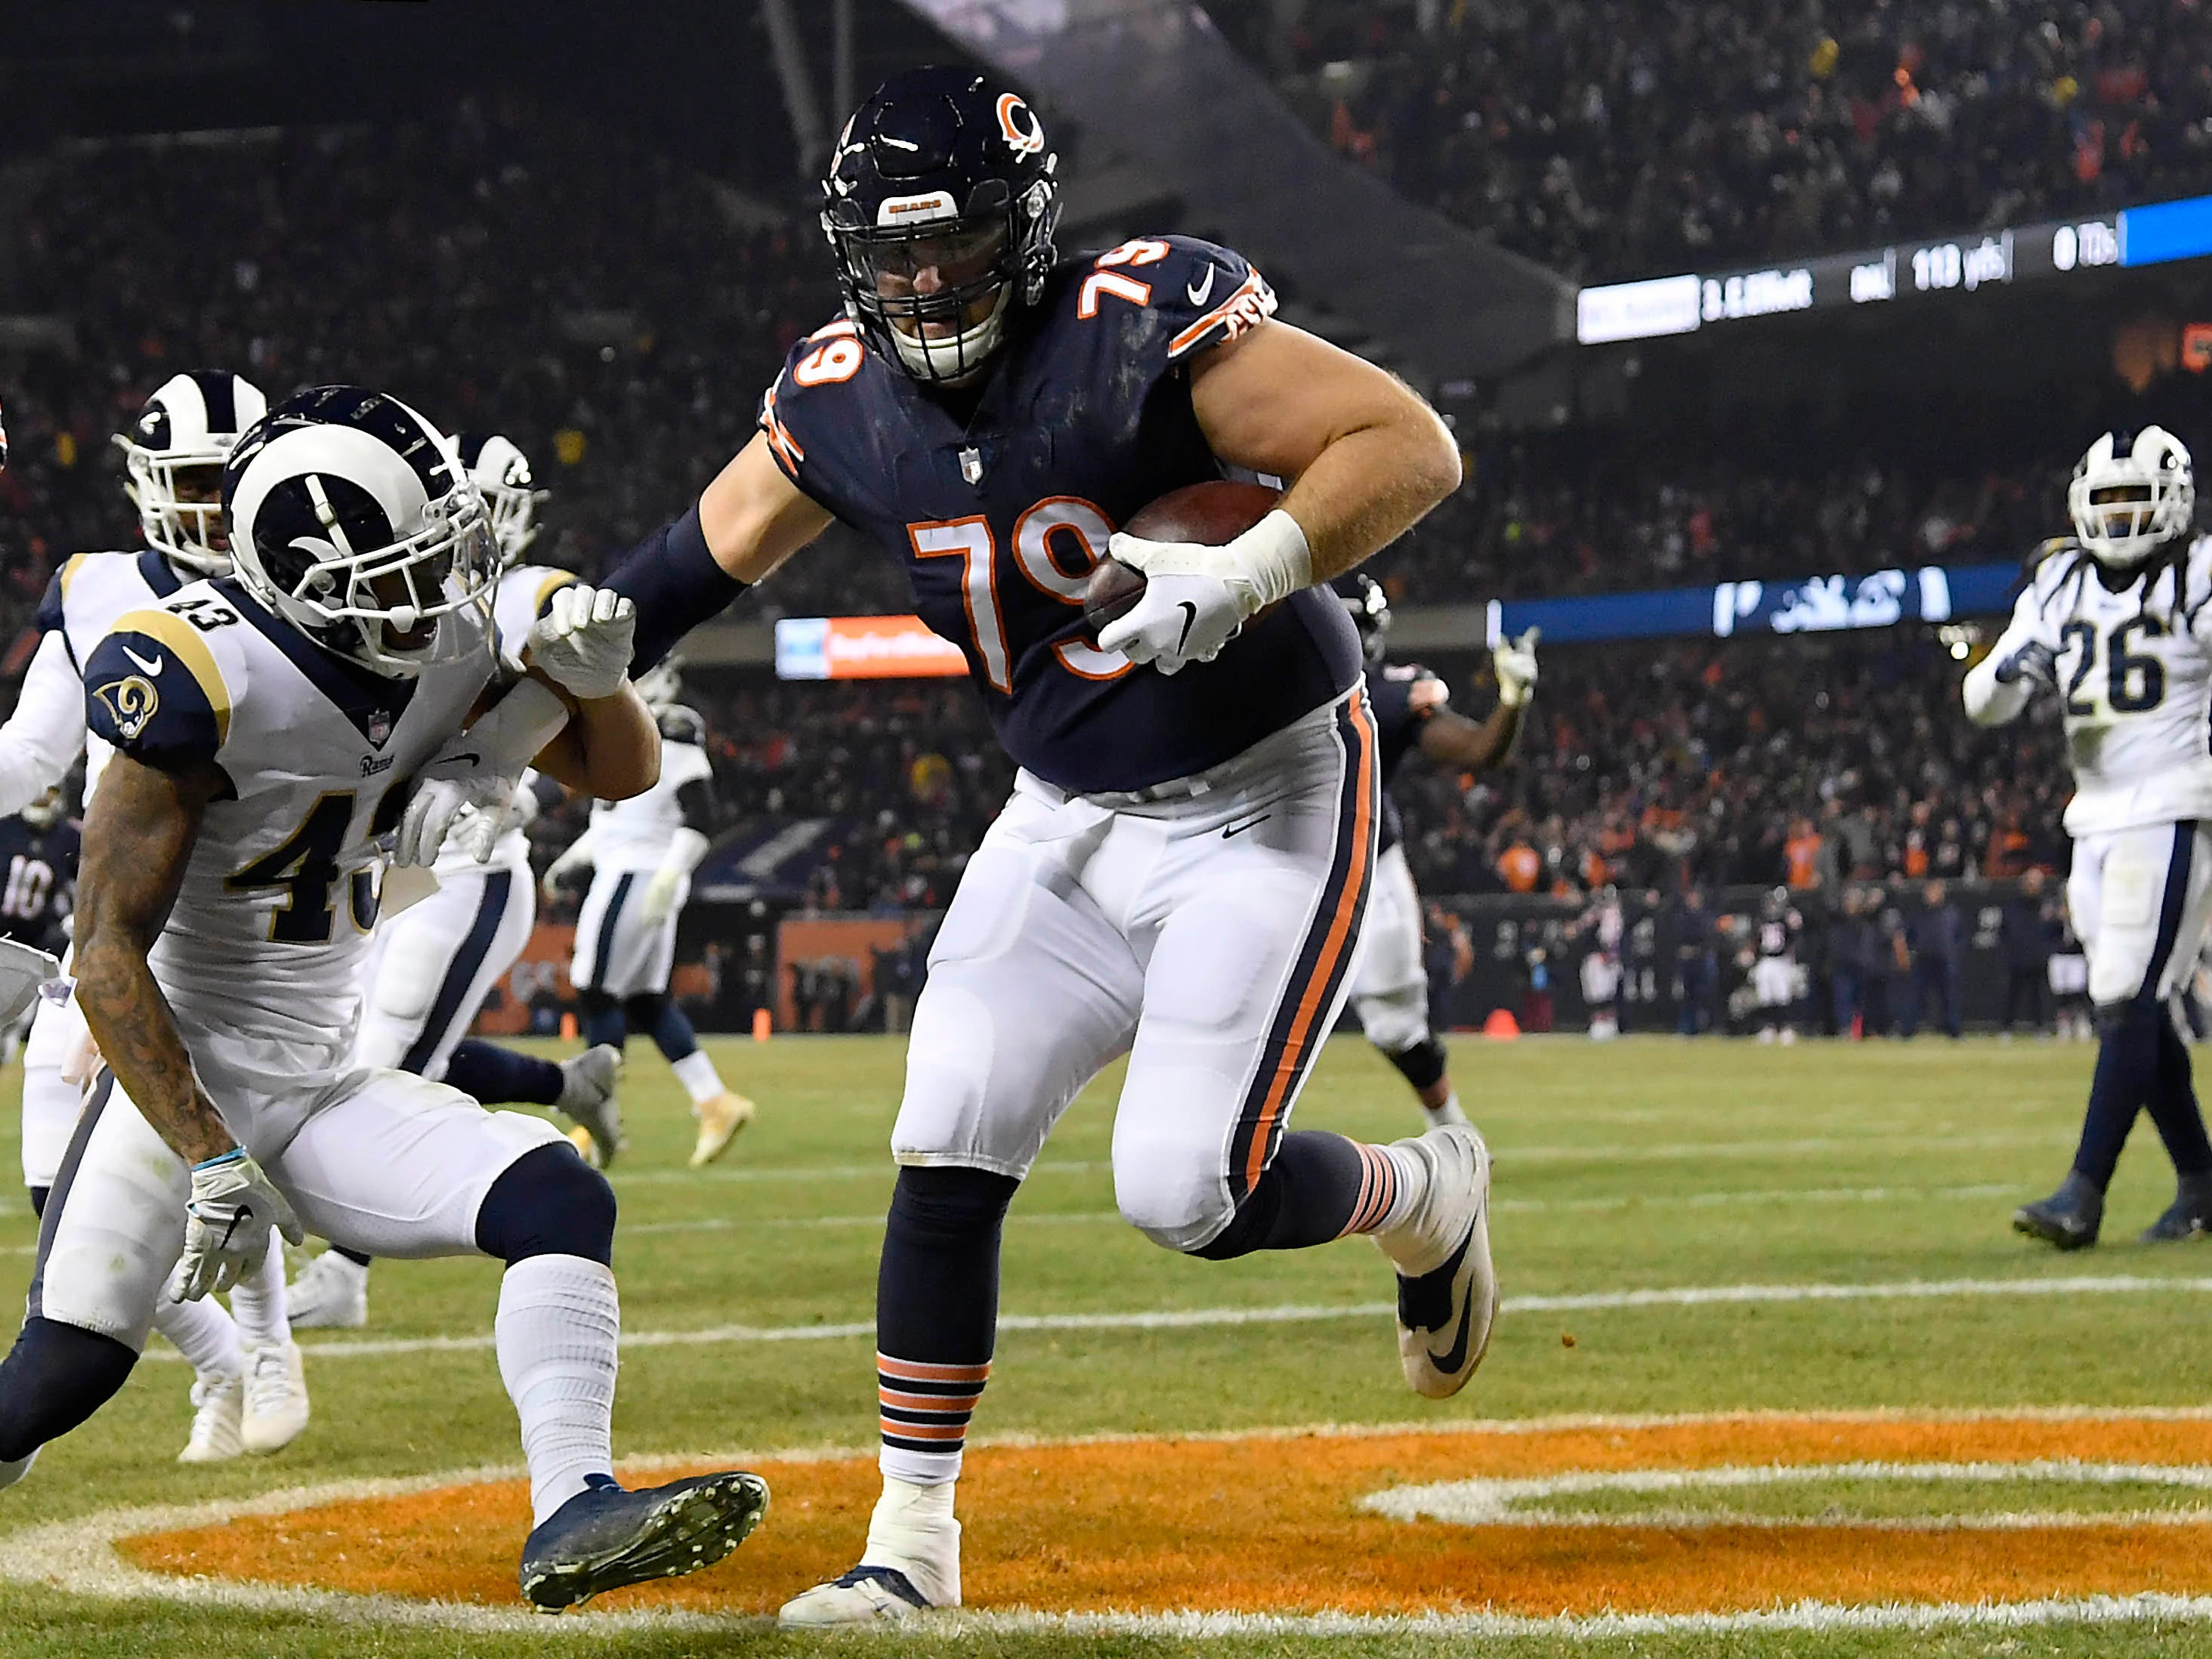 Chicago Bears offensive tackle Bradley Sowell scores a touchdown against the Los Angeles Rams at Soldier Field.